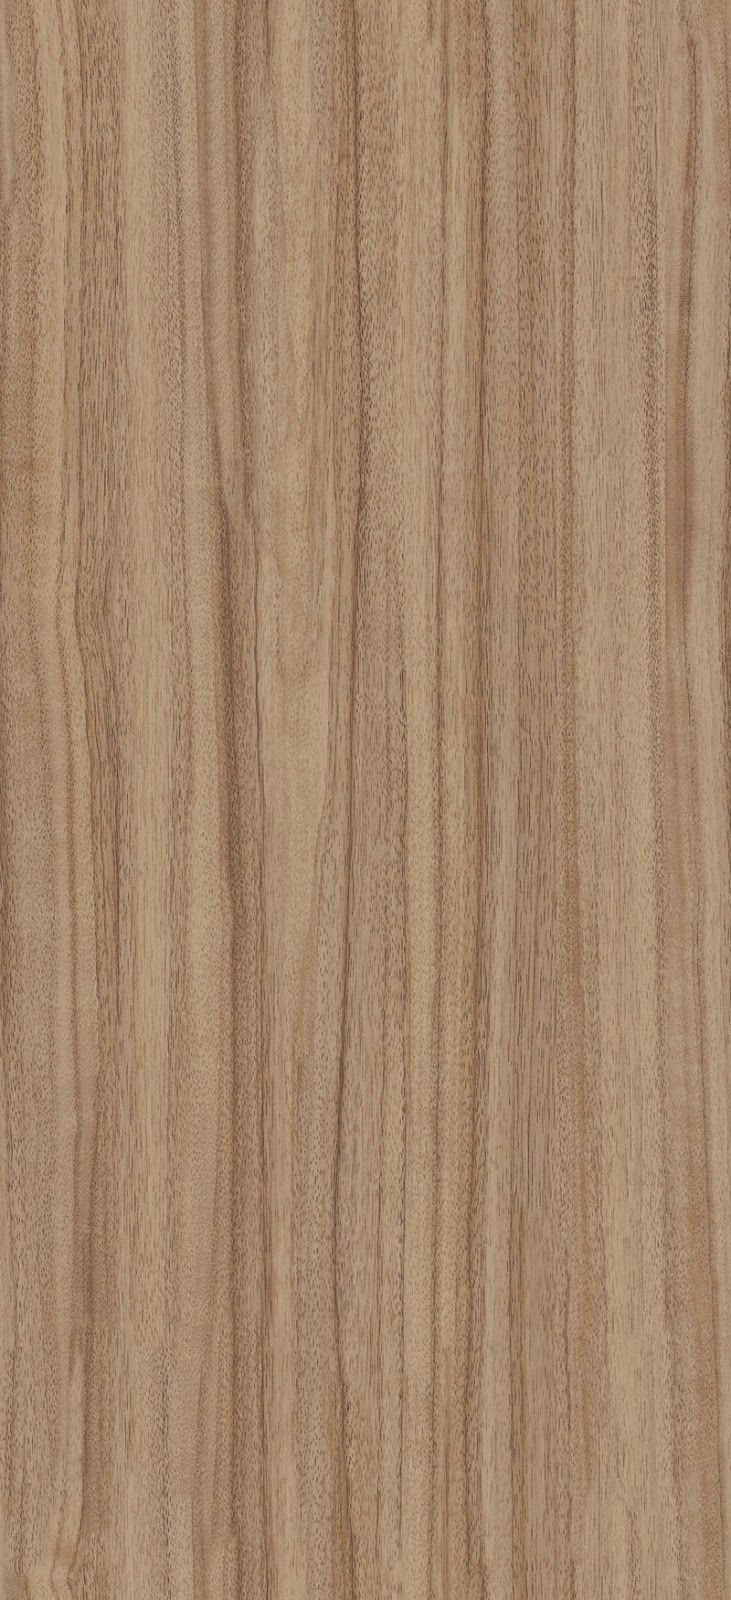 Wood Texture On Pinterest Wood Background Wood Grain And Wood